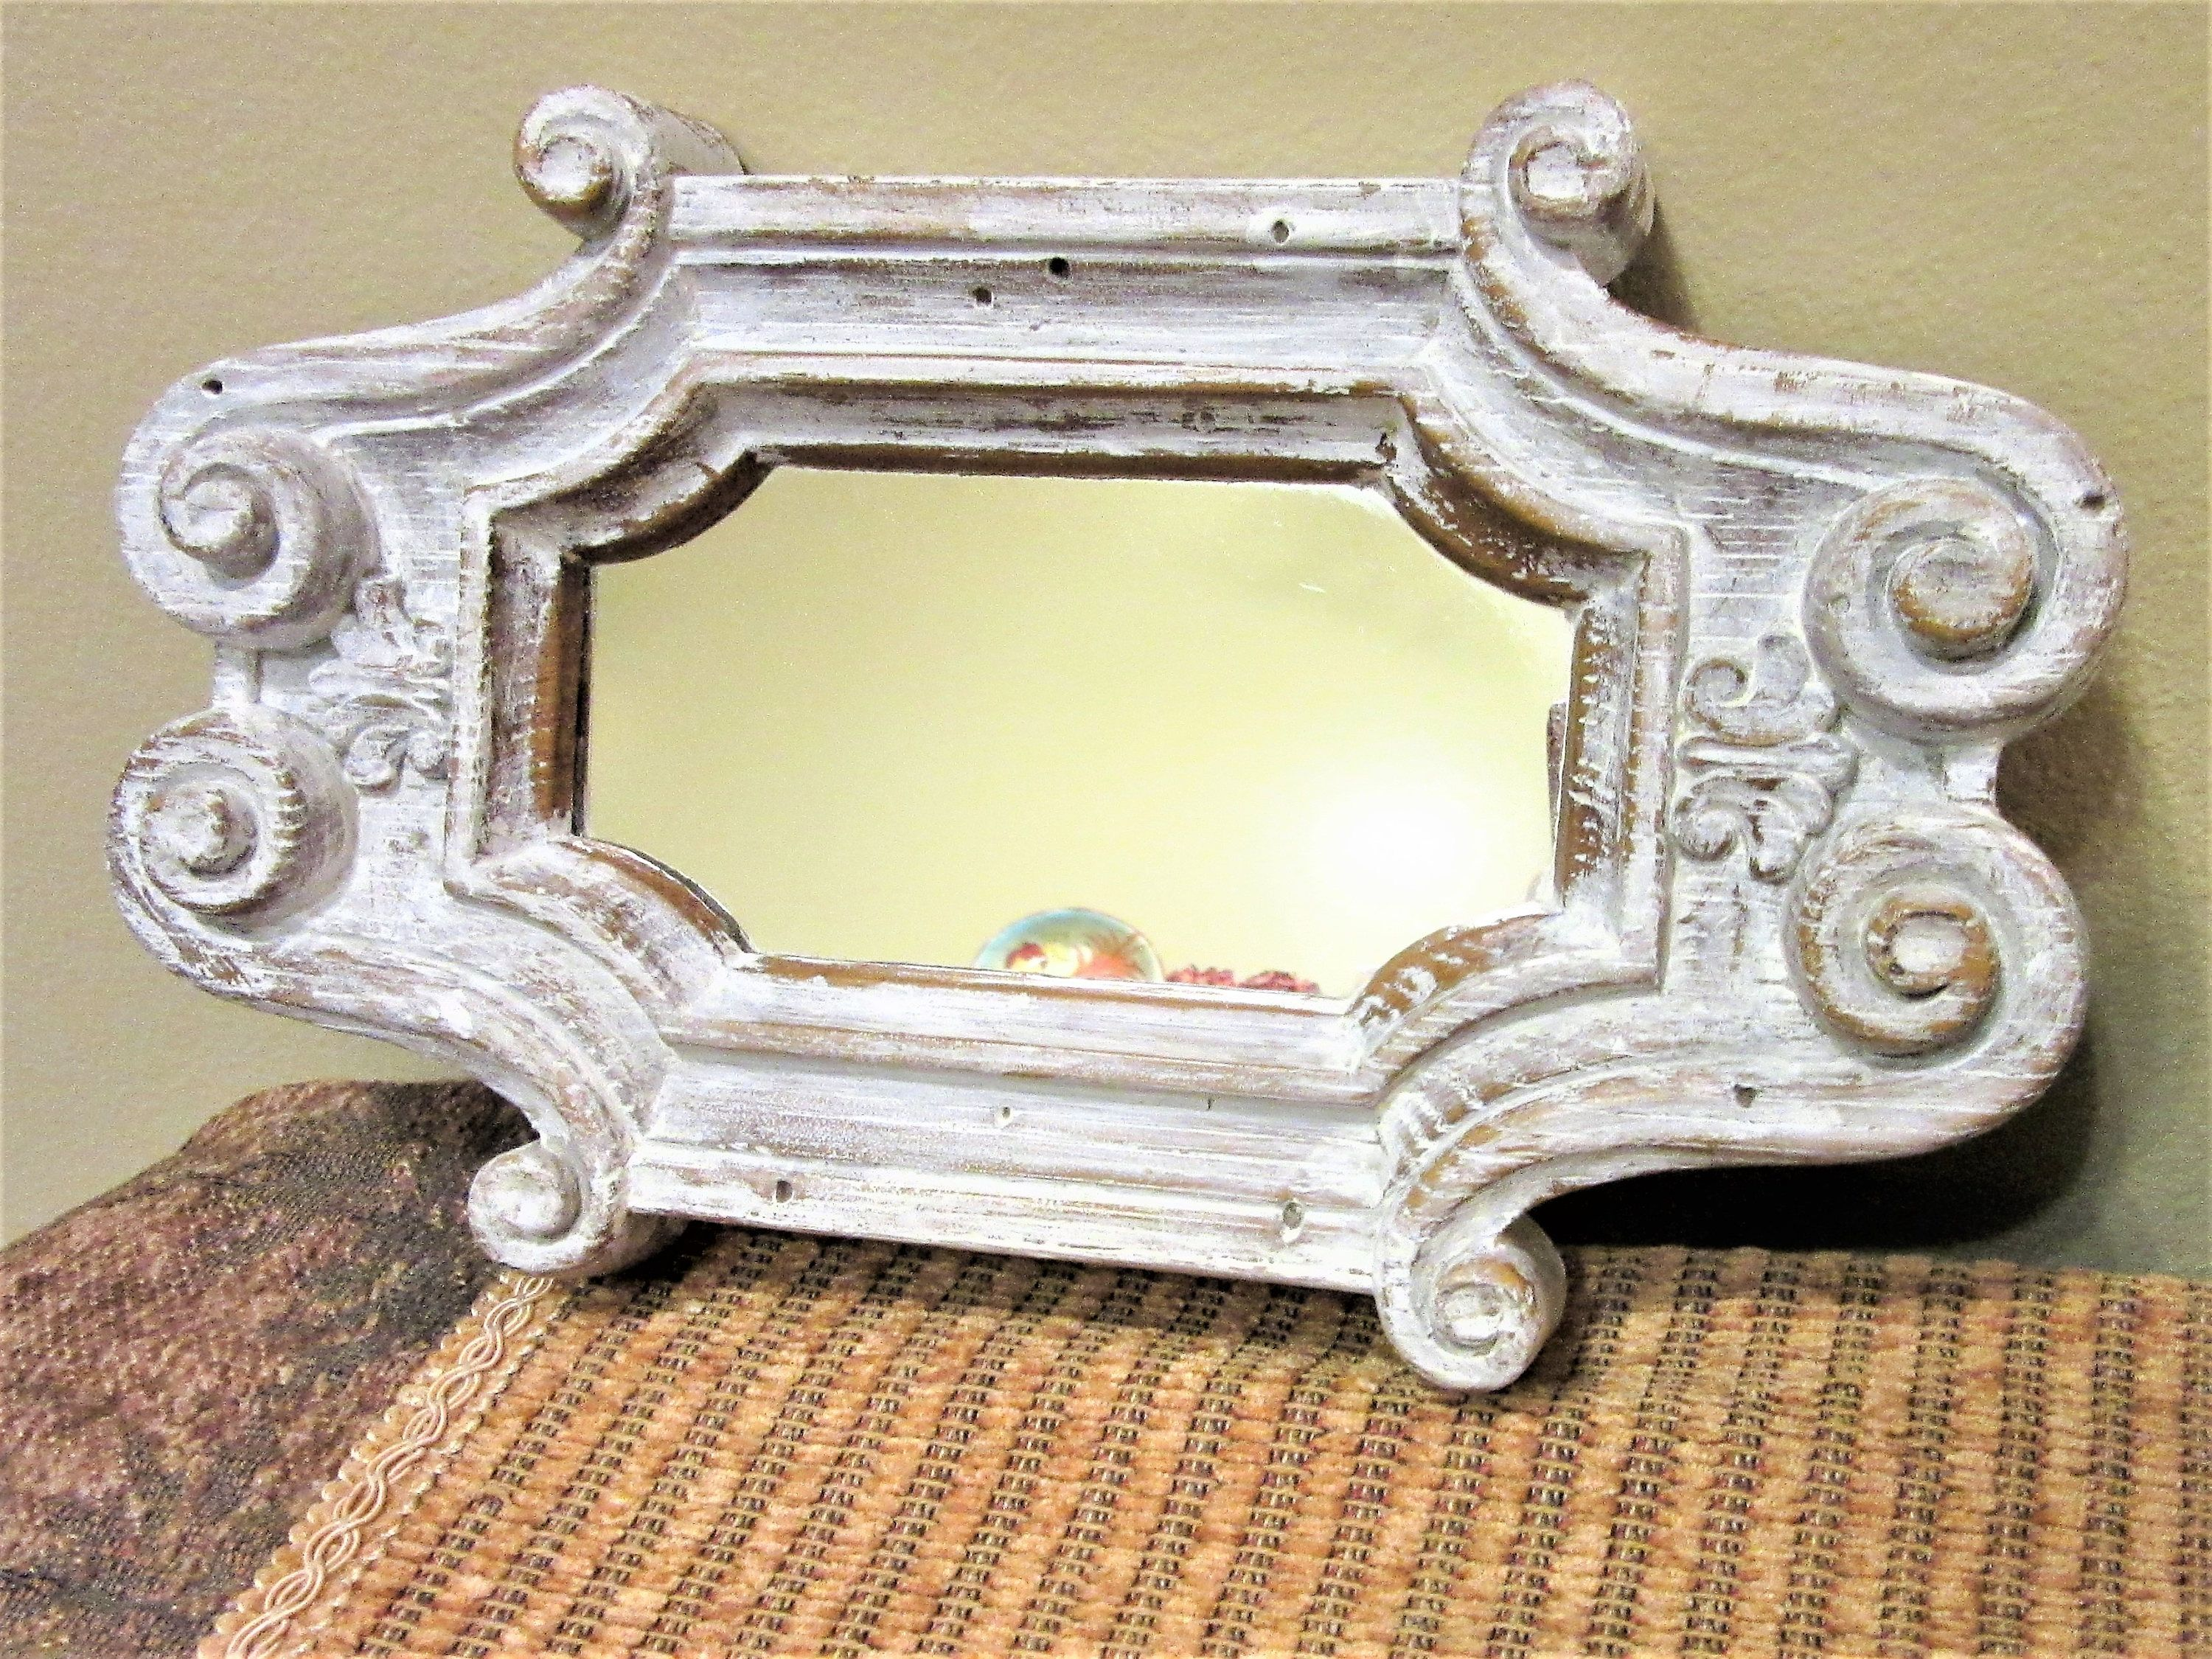 Shabby Mirror White Ornate Wall Decor Hanging or Tray Rustic Chic ...